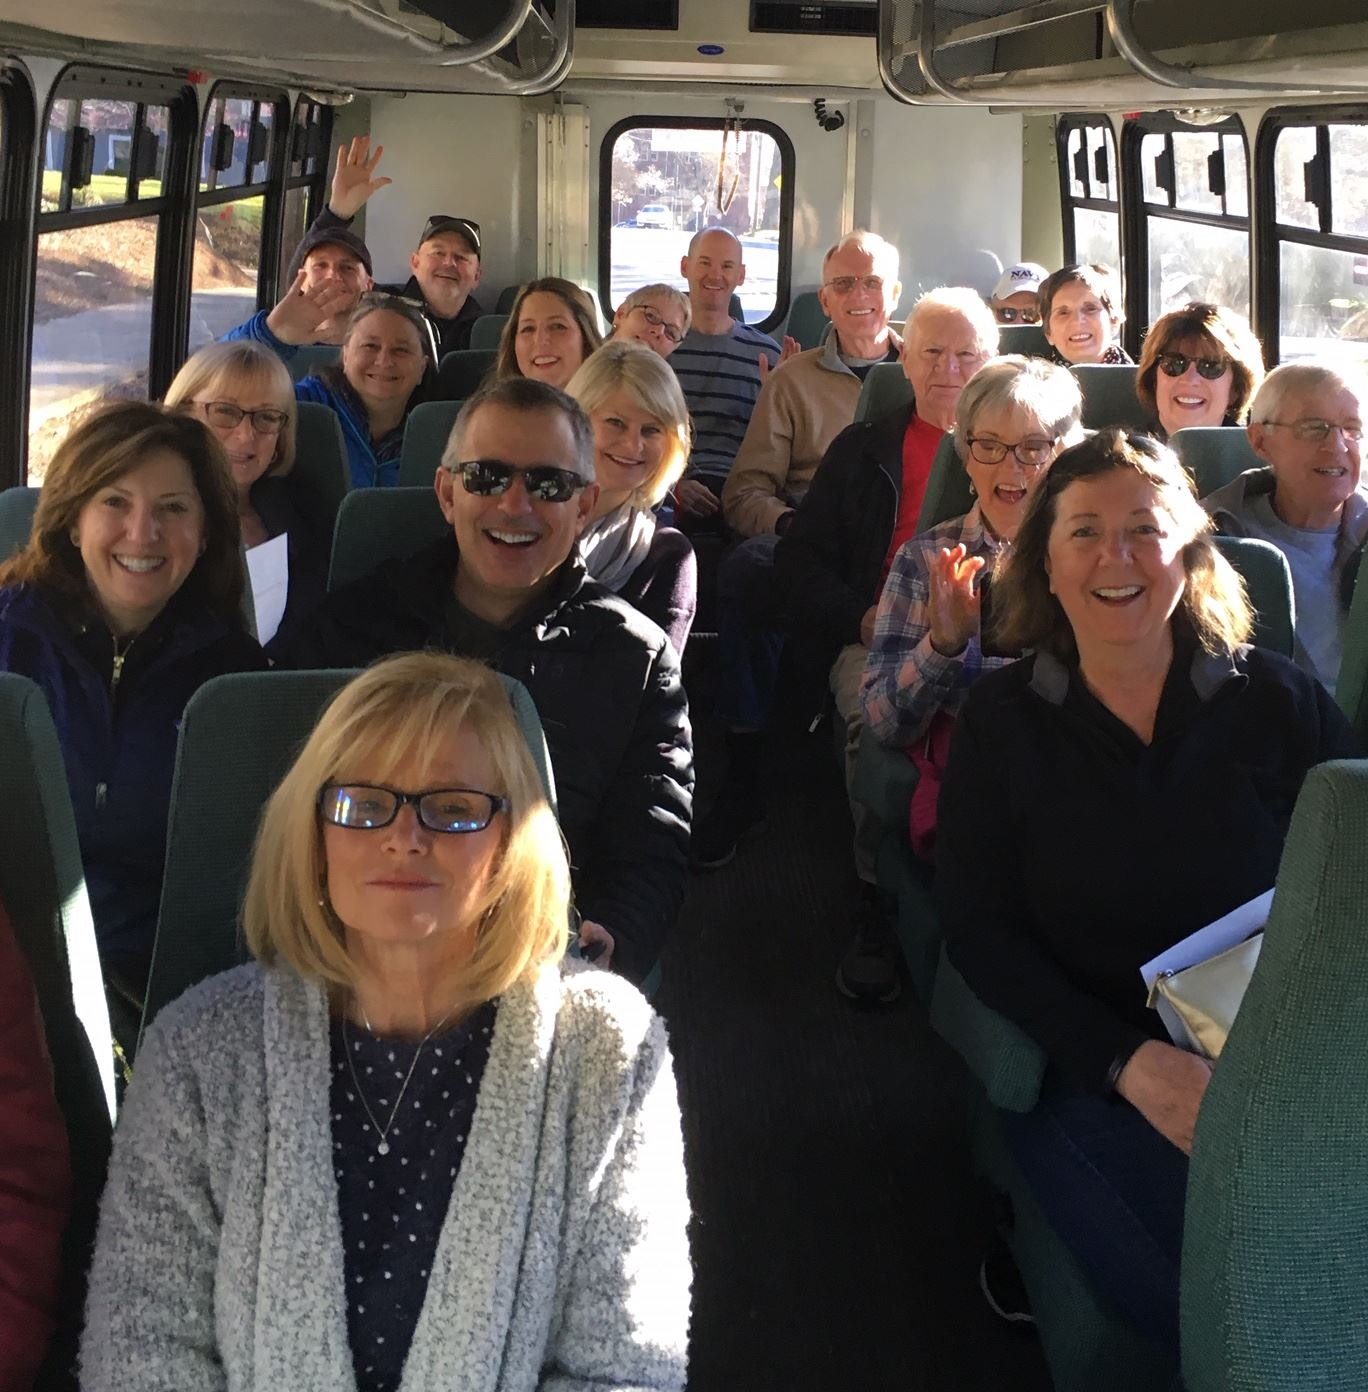 2019 03 23 Bus tour group shot